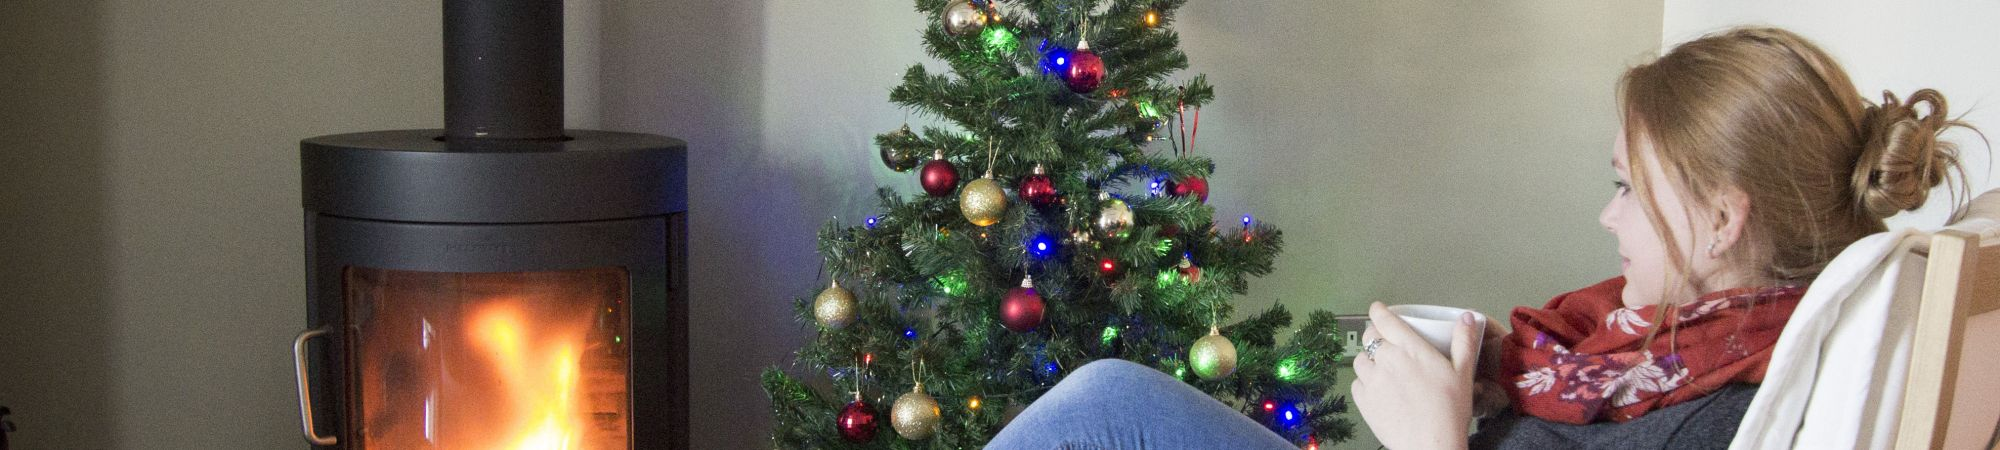 Christmas at Porthleven Holiday Cottages